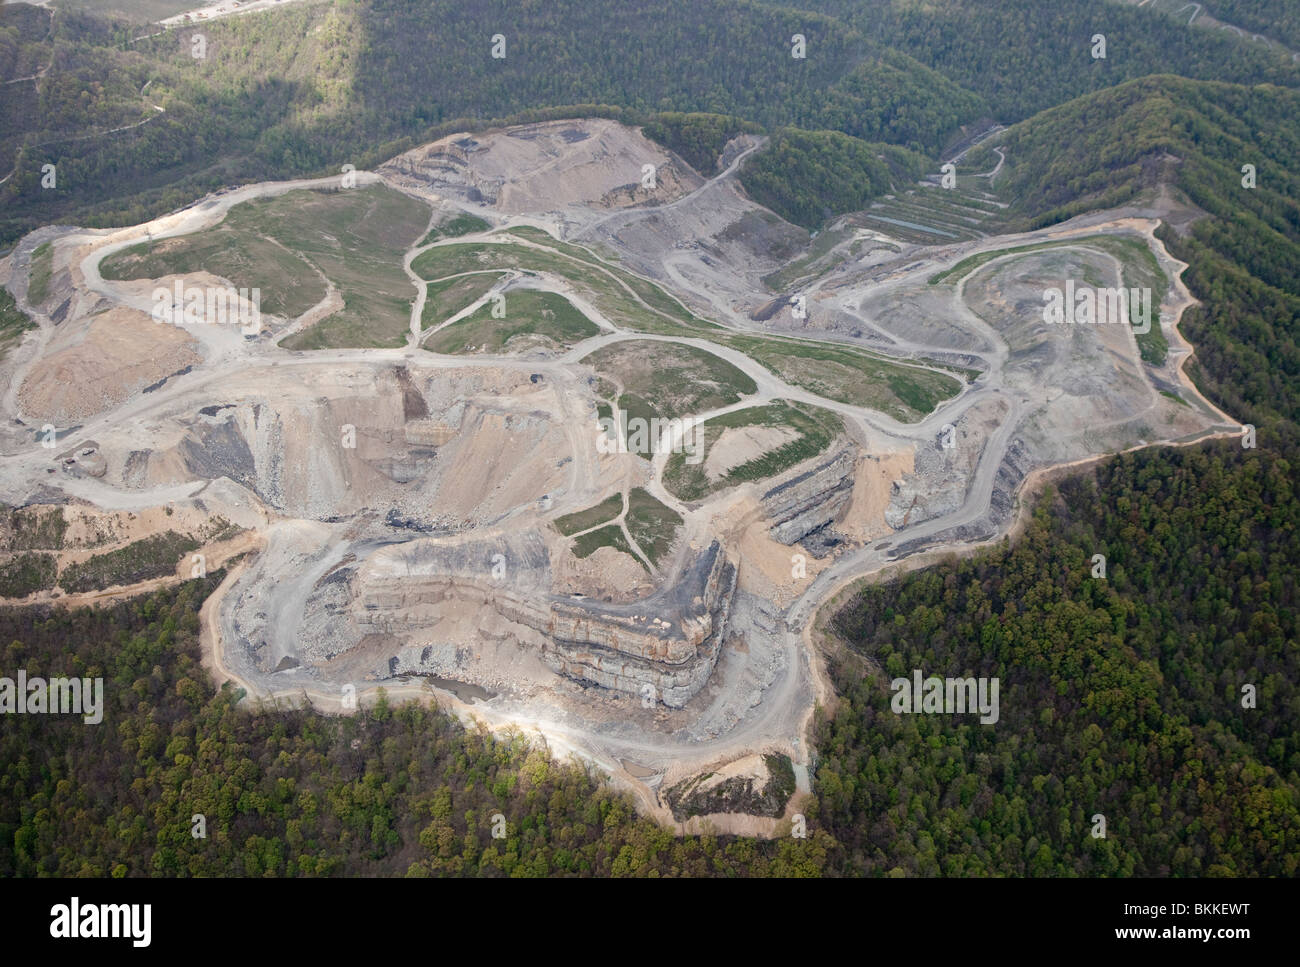 Aerial View of Mountaintop Removal Coal Mining - Stock Image